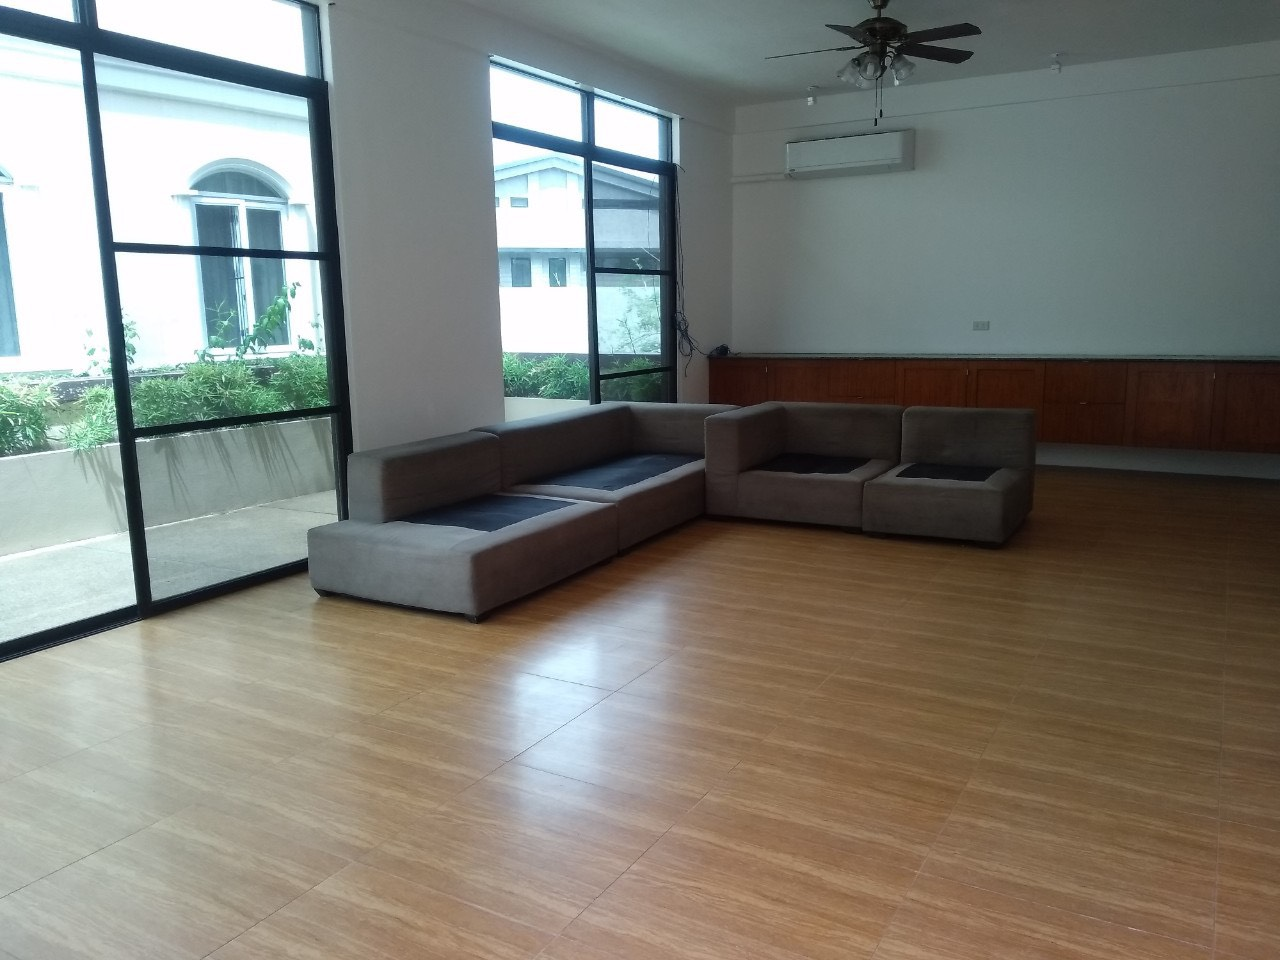 5 Bedrooms House For Rent, McKinley Hill Village 6